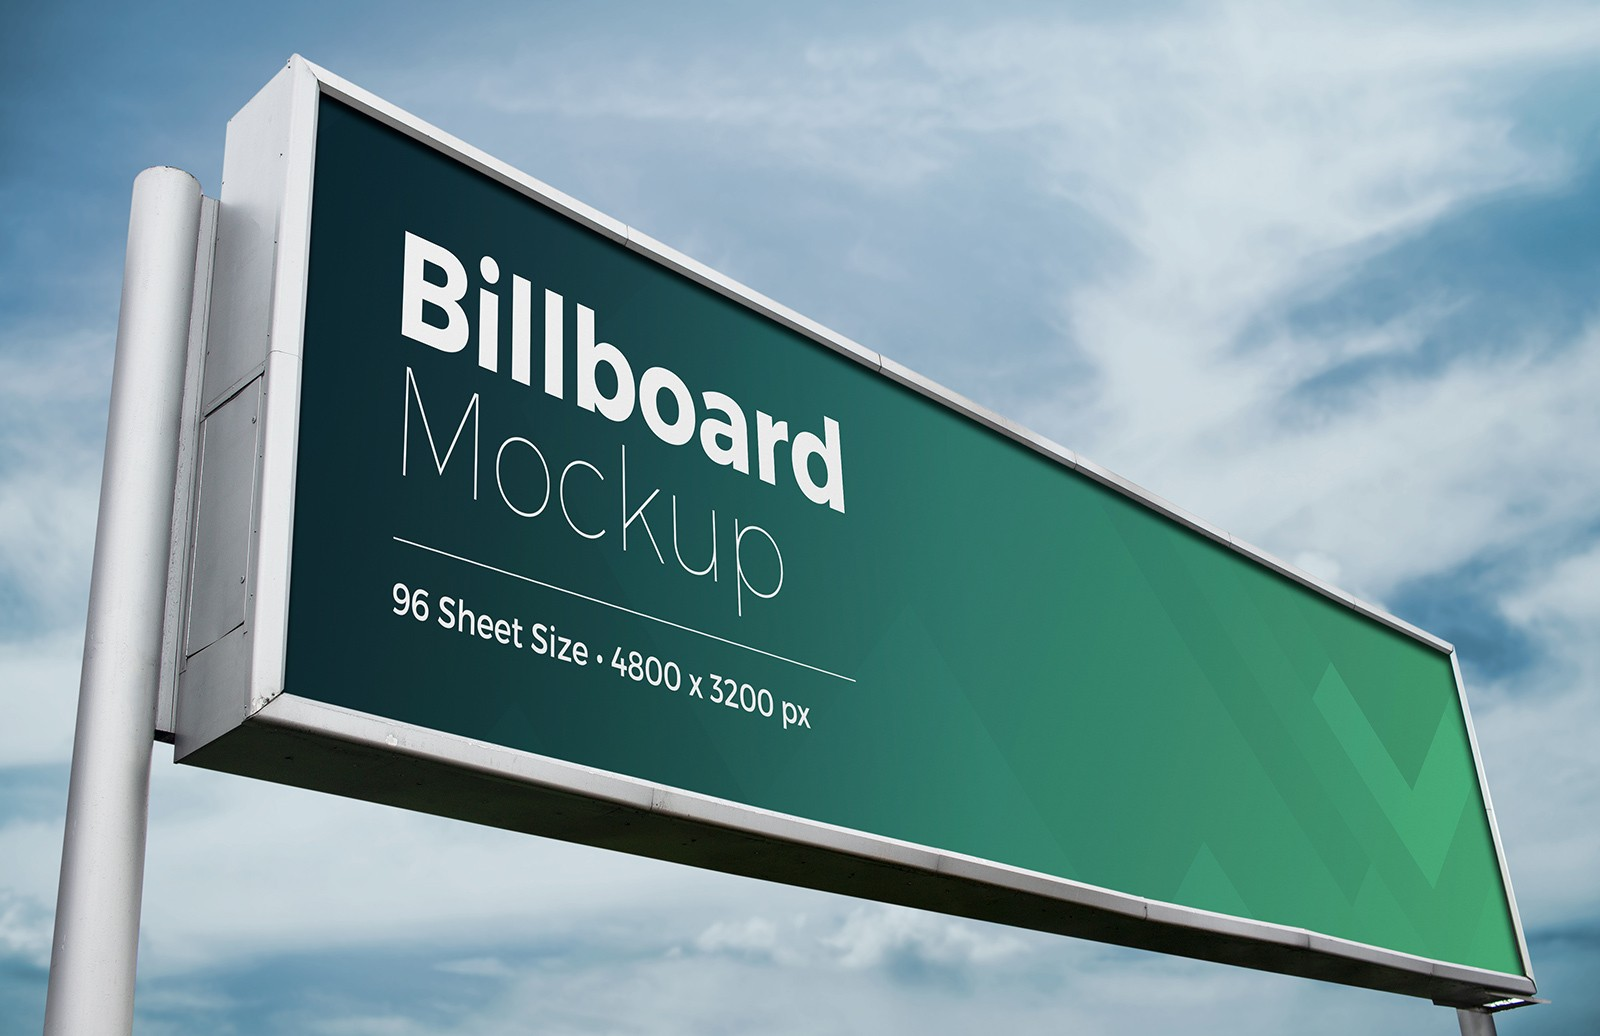 Billboard Mockup For Photoshop Preview 1A